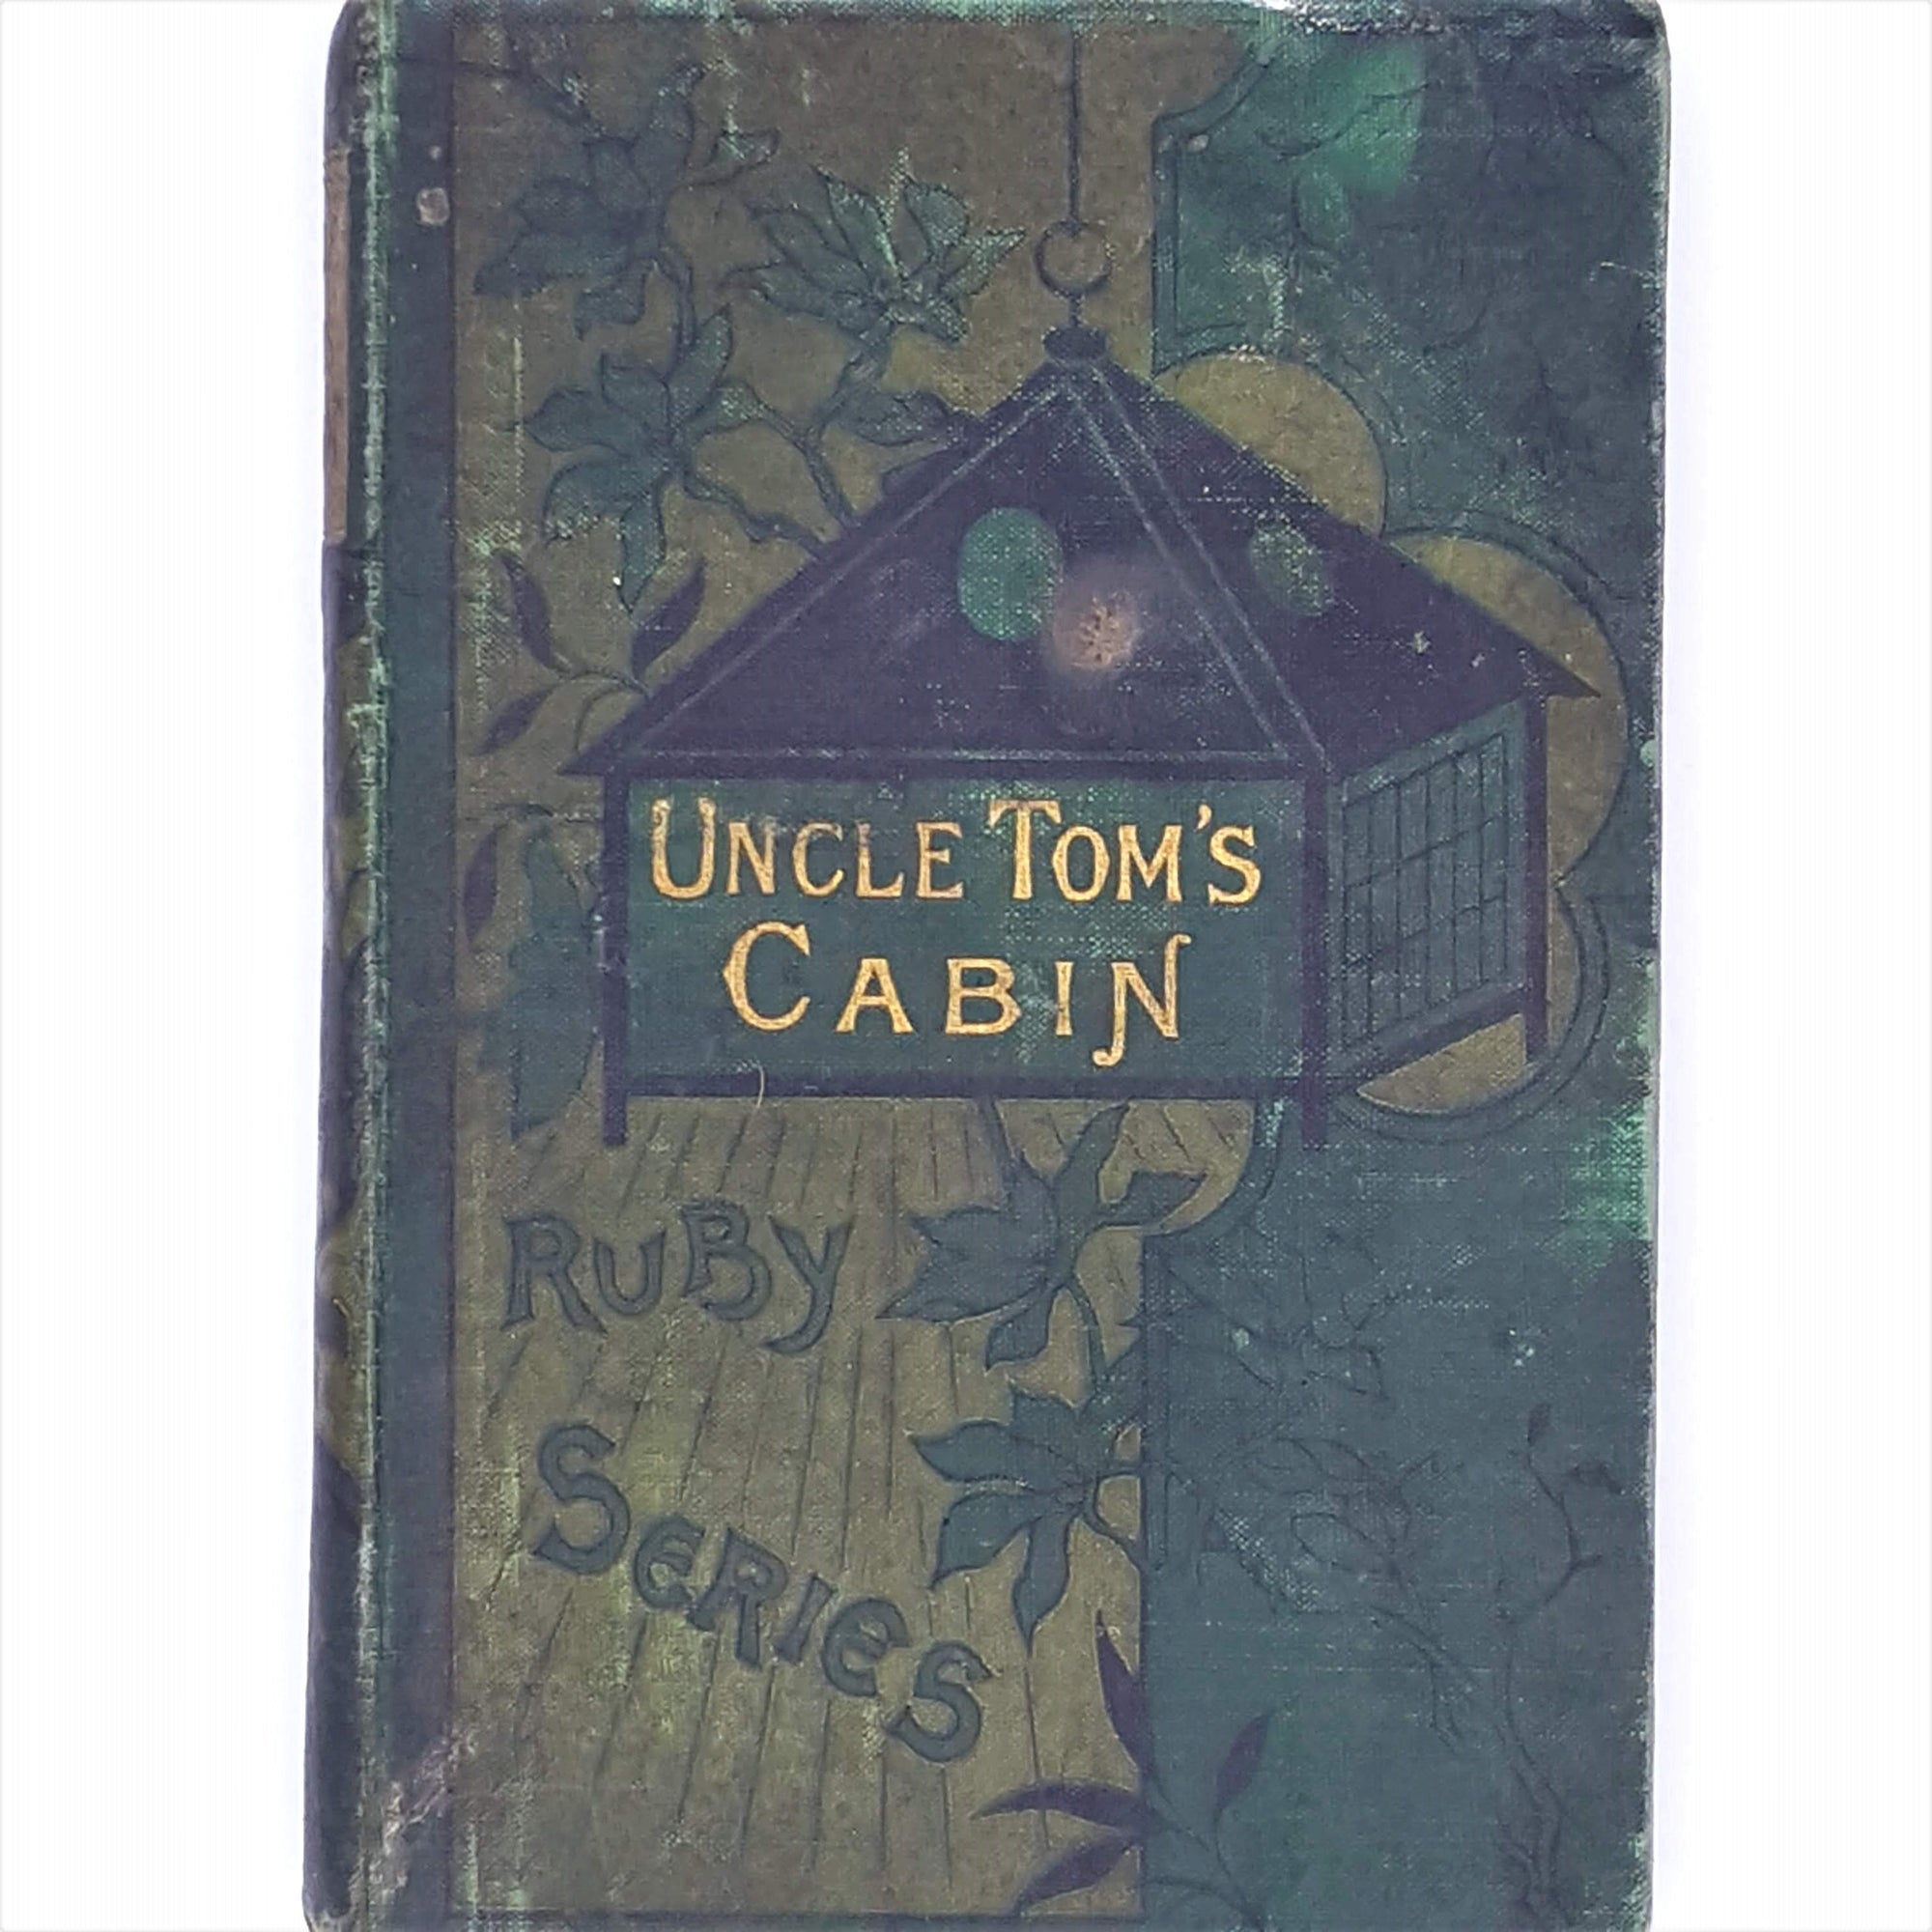 green-george-routlidge-and-sons-uncle-toms-cabin-country-house-library-antique-decorative-london-old-ruby-series-thrift-gold-gilt-books-patterned-1888-harriet-beecher-stowe-vintage-classic-